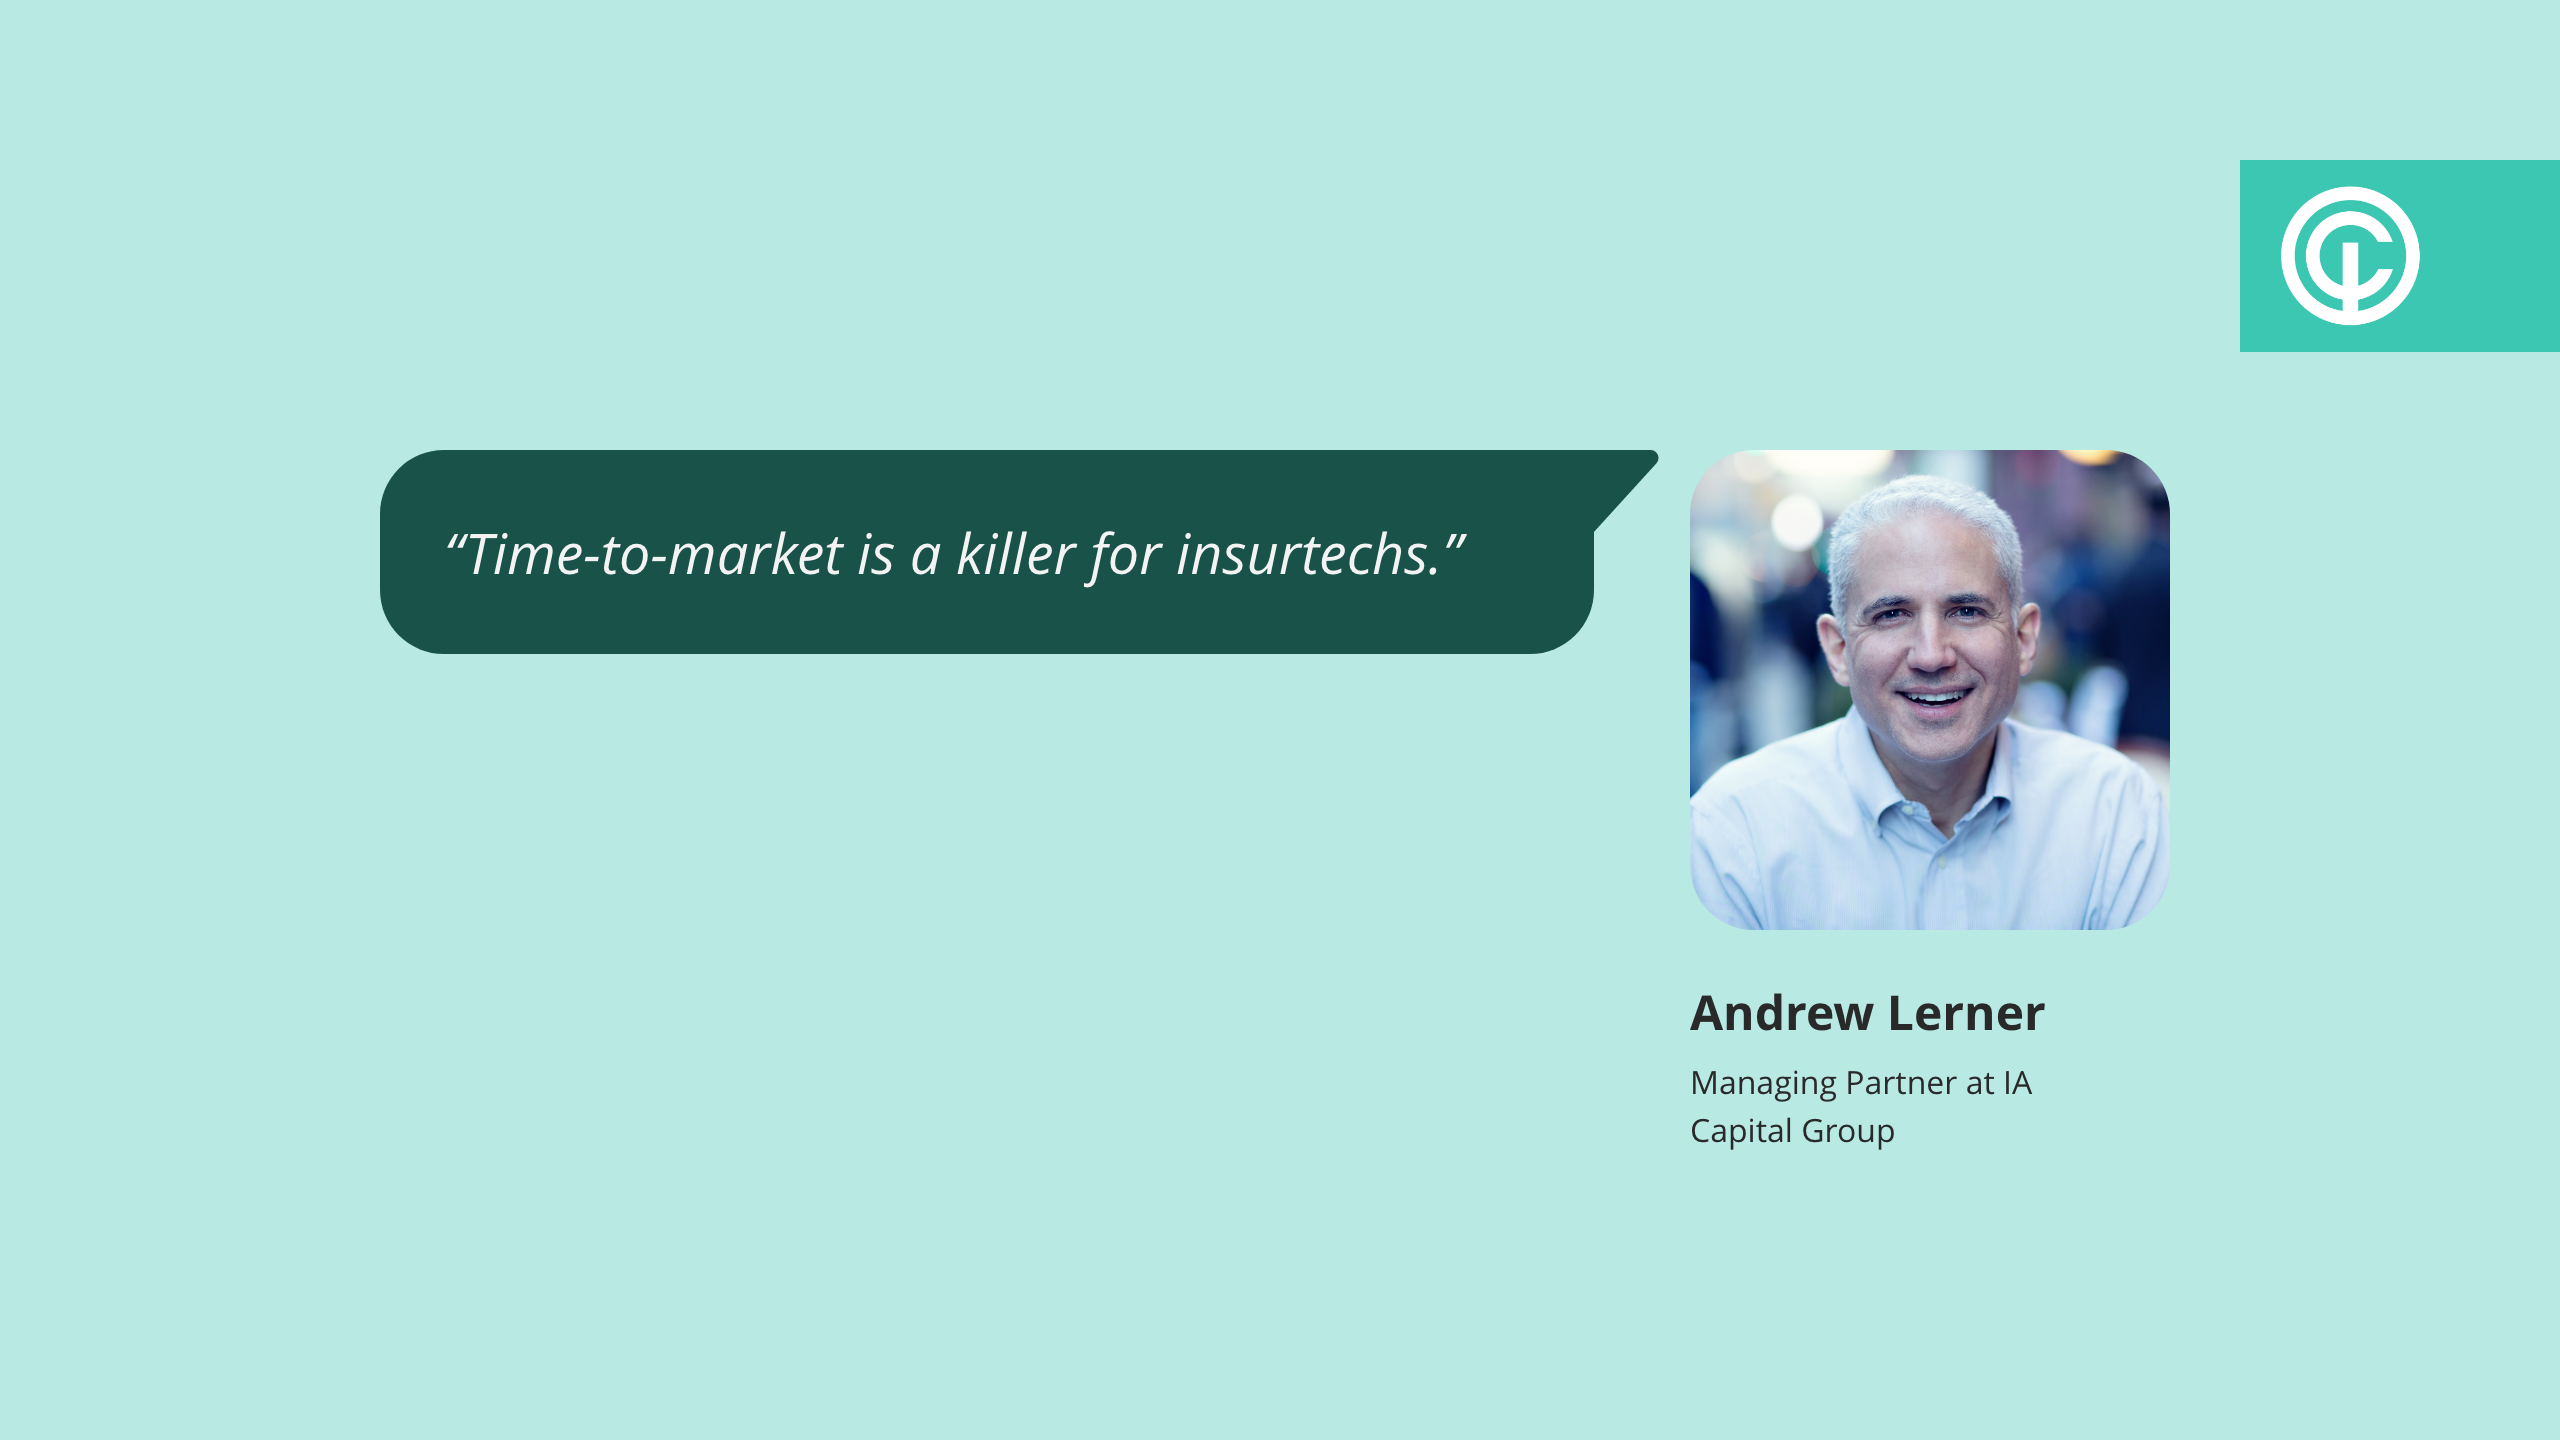 quote from andrew lerner